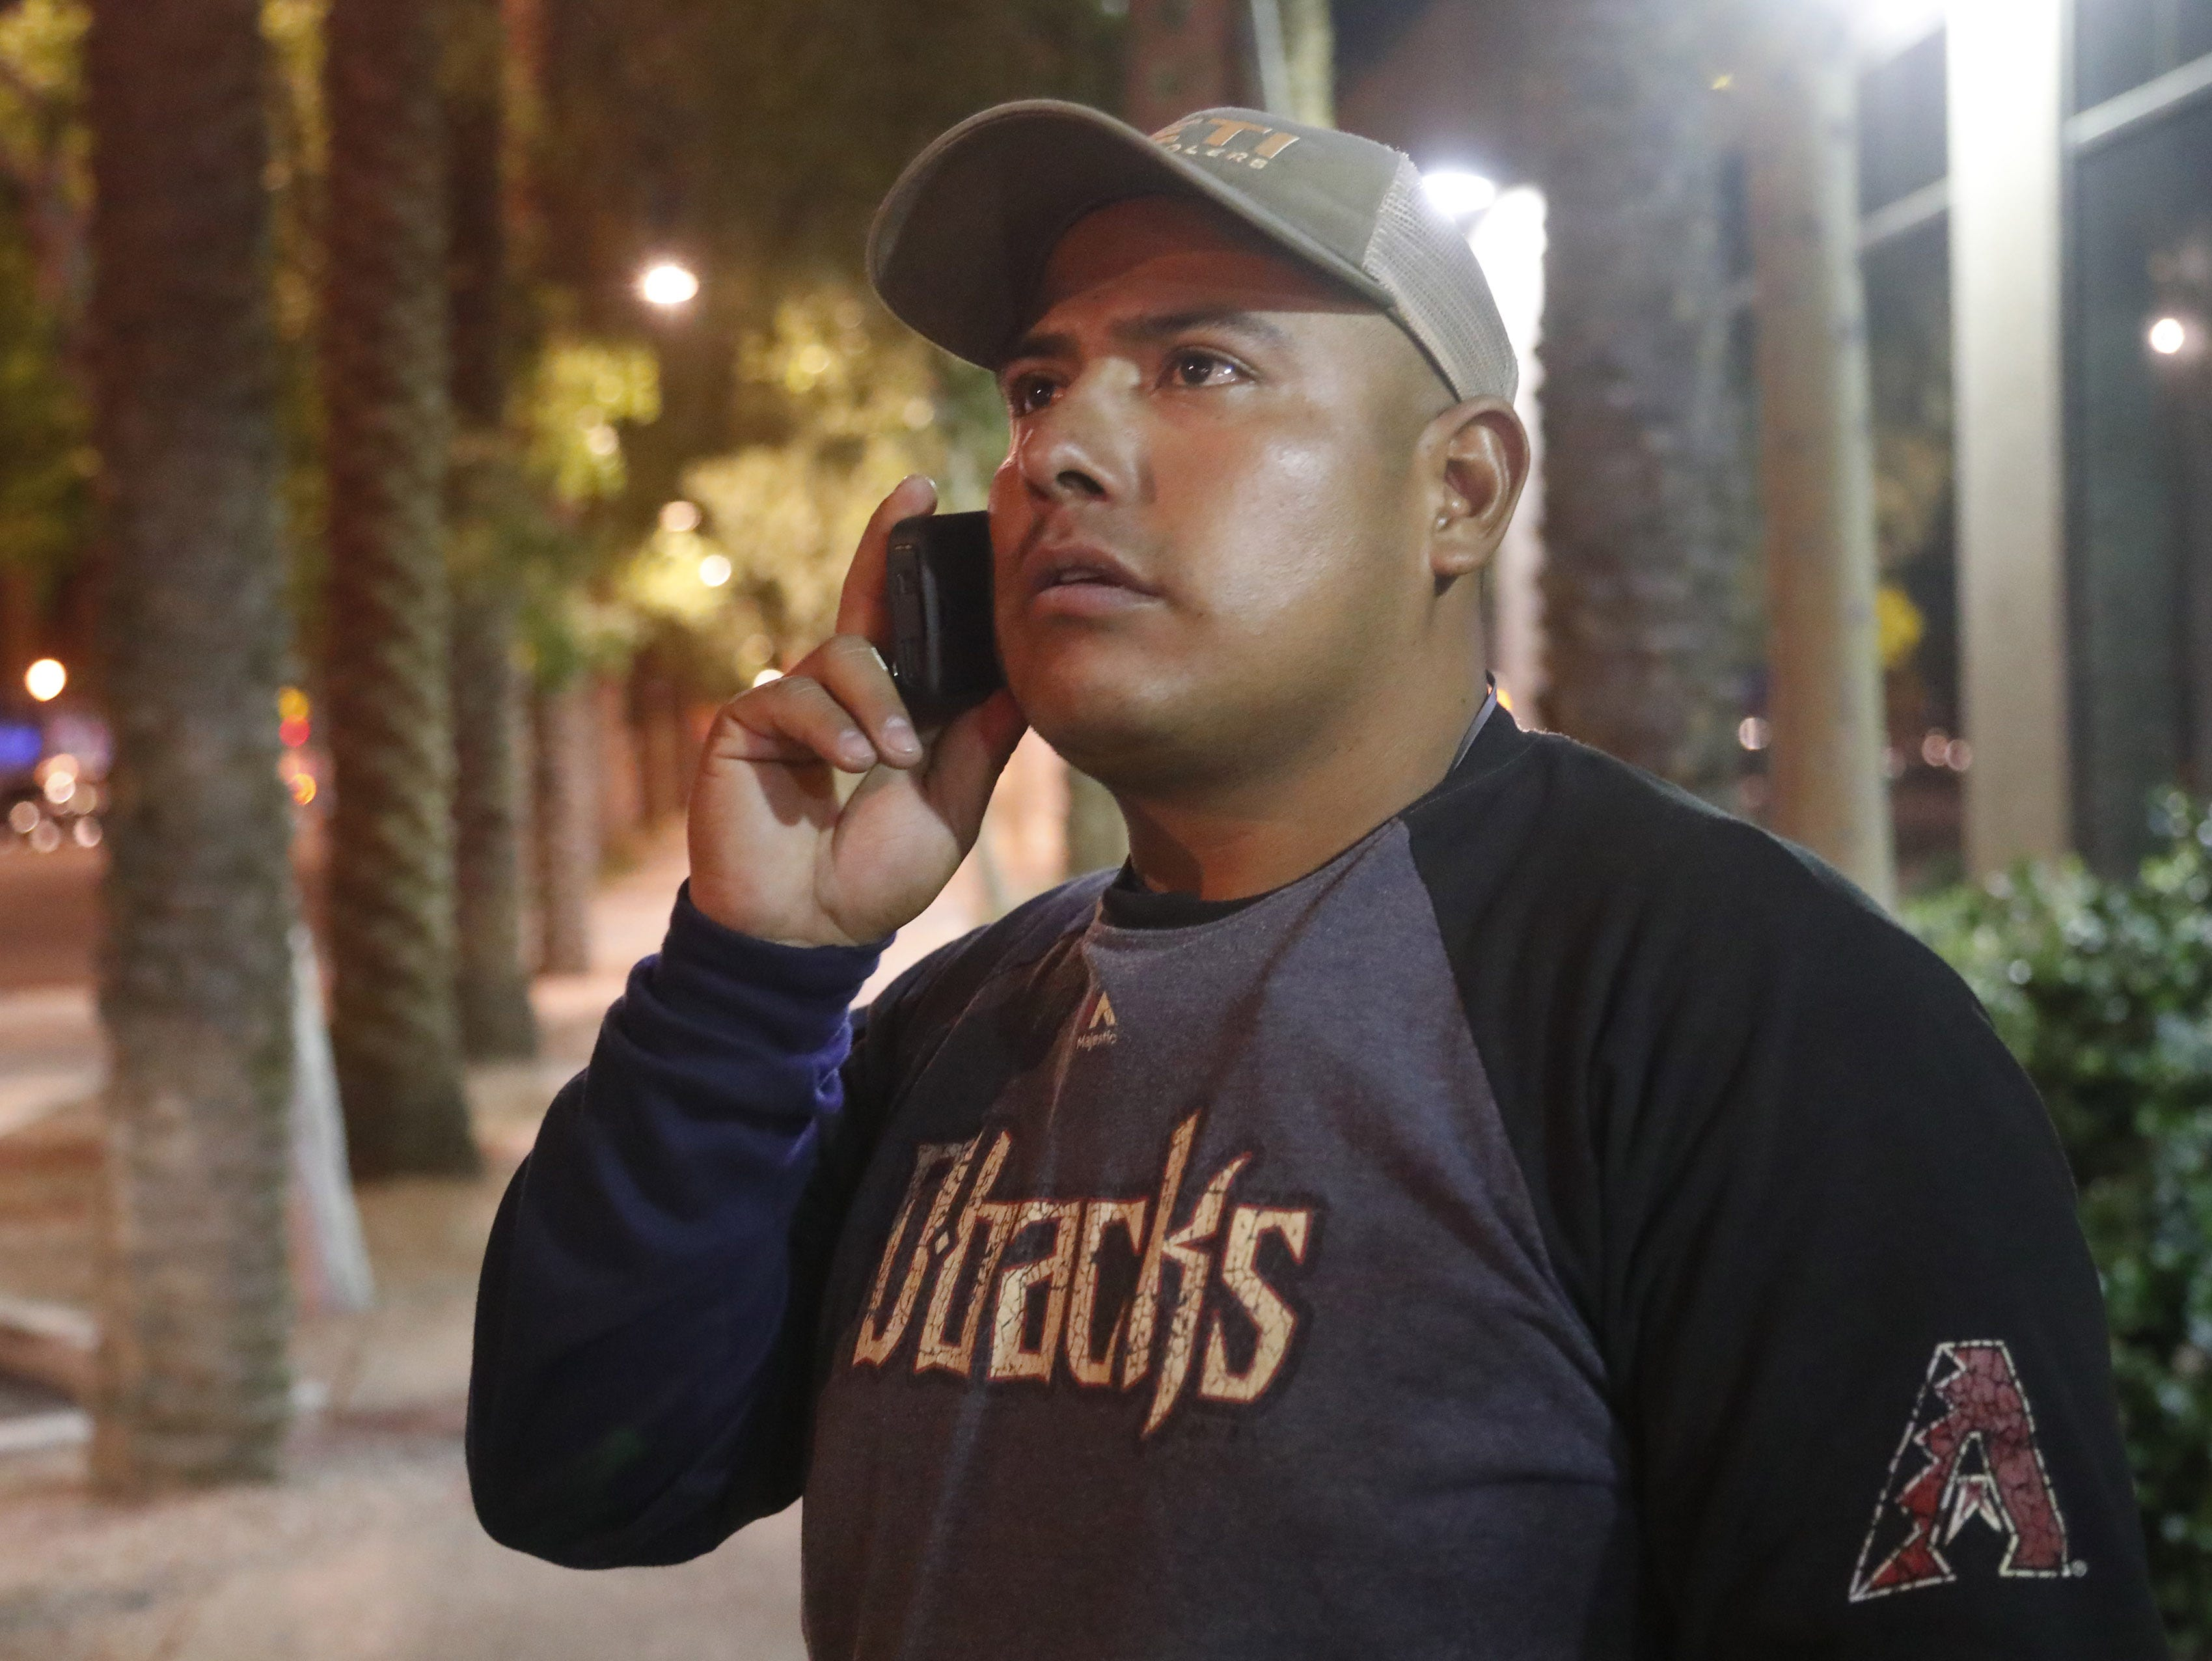 Jose Arturo Gonzalez Carranza, 30, talks on the phone in downtown Phoenix shortly after being released from custody on April 15, 2019.